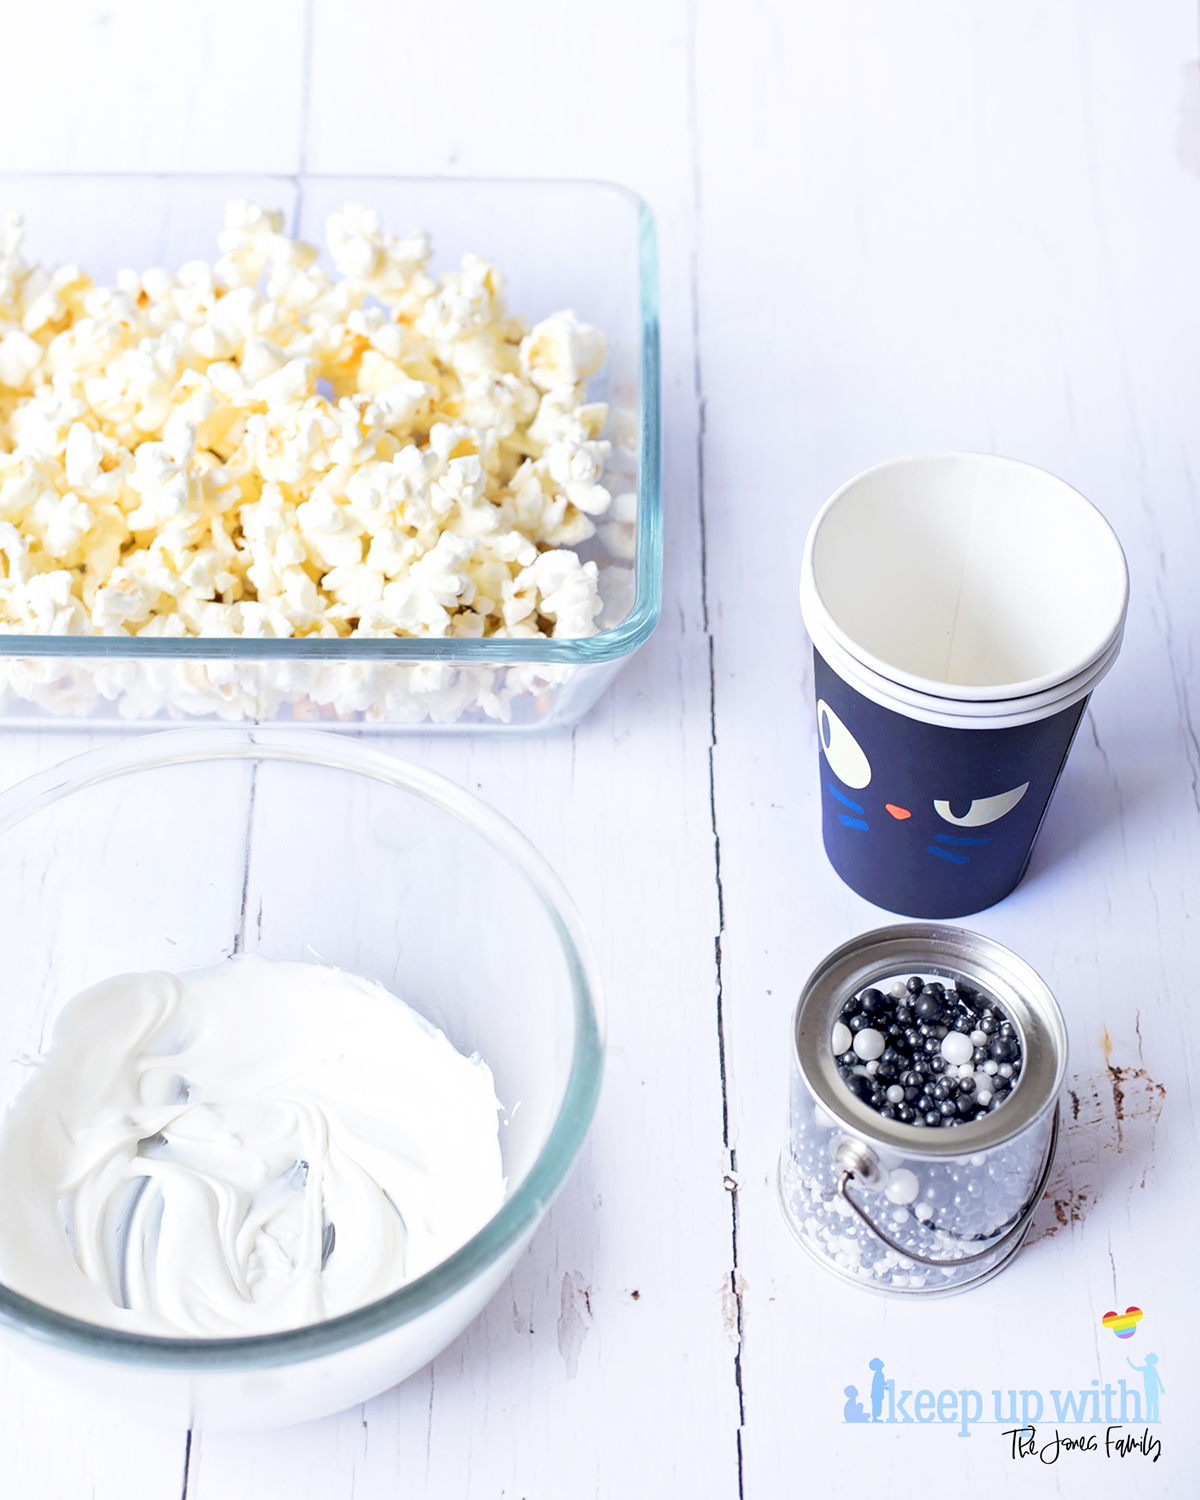 Image shows the ingredients needed to make hocus pocus popcorn. Image by keep up with the jones family.